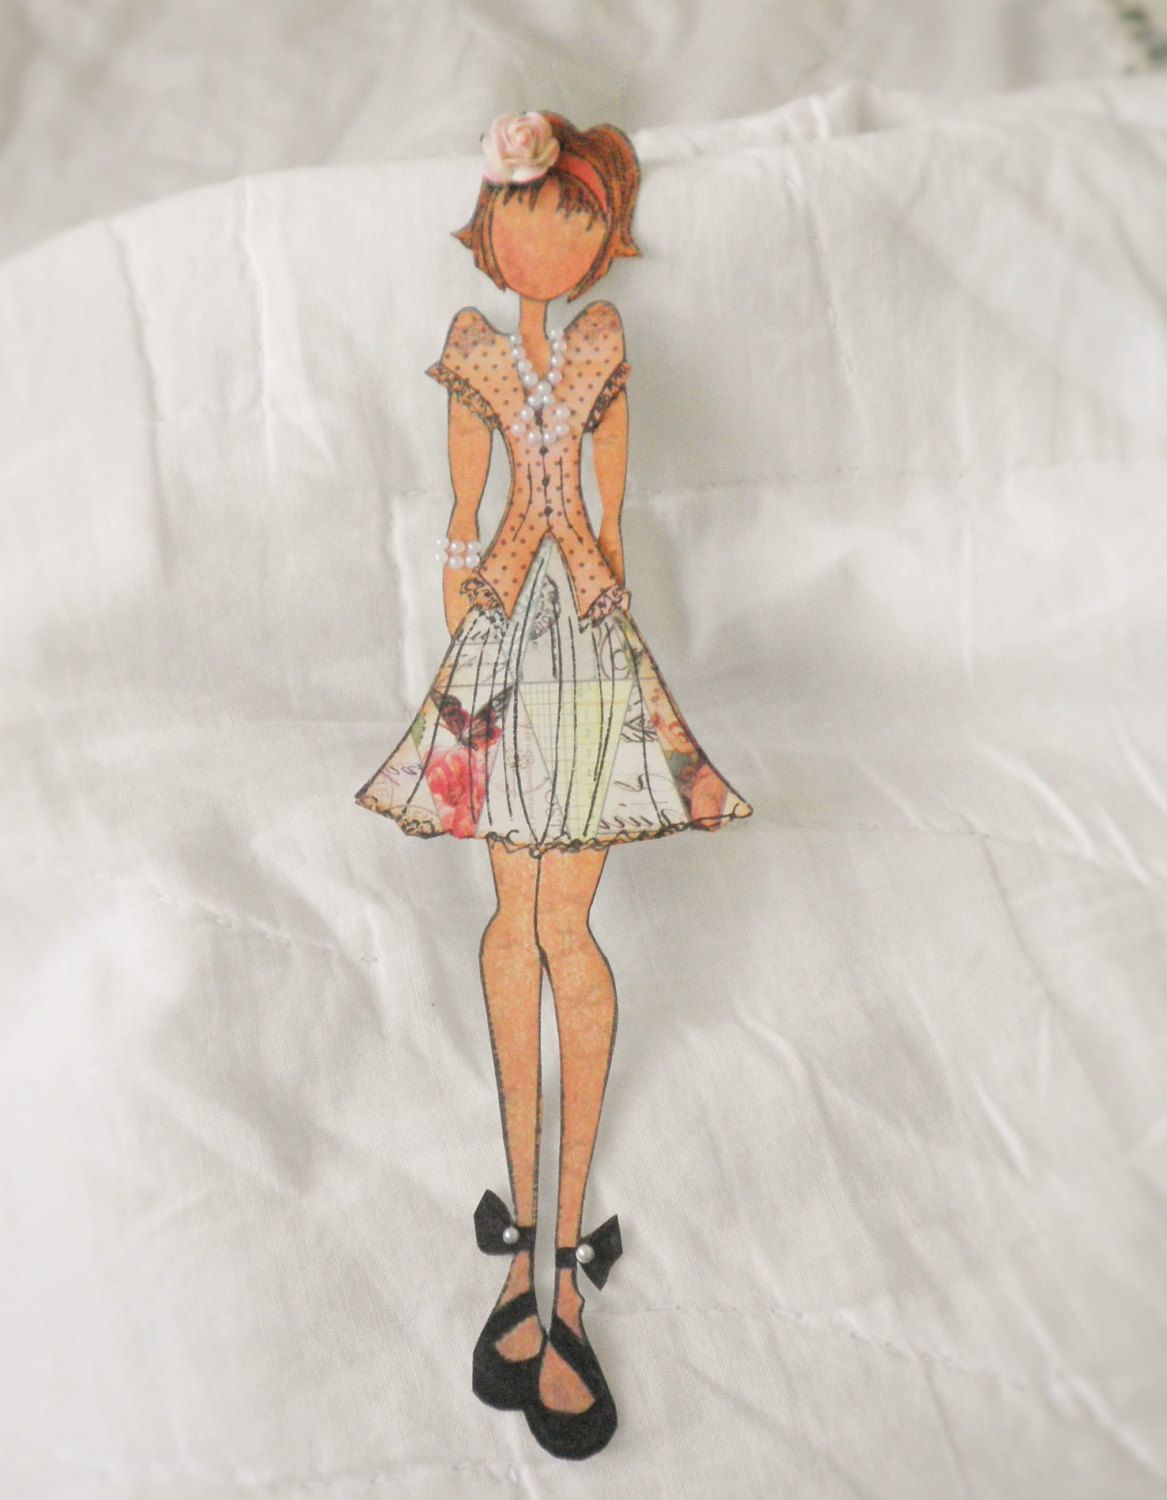 Handmade Beautiful Prima Julie Butterfly Dress Paper Doll Embellishment by lyoncountry on Etsy